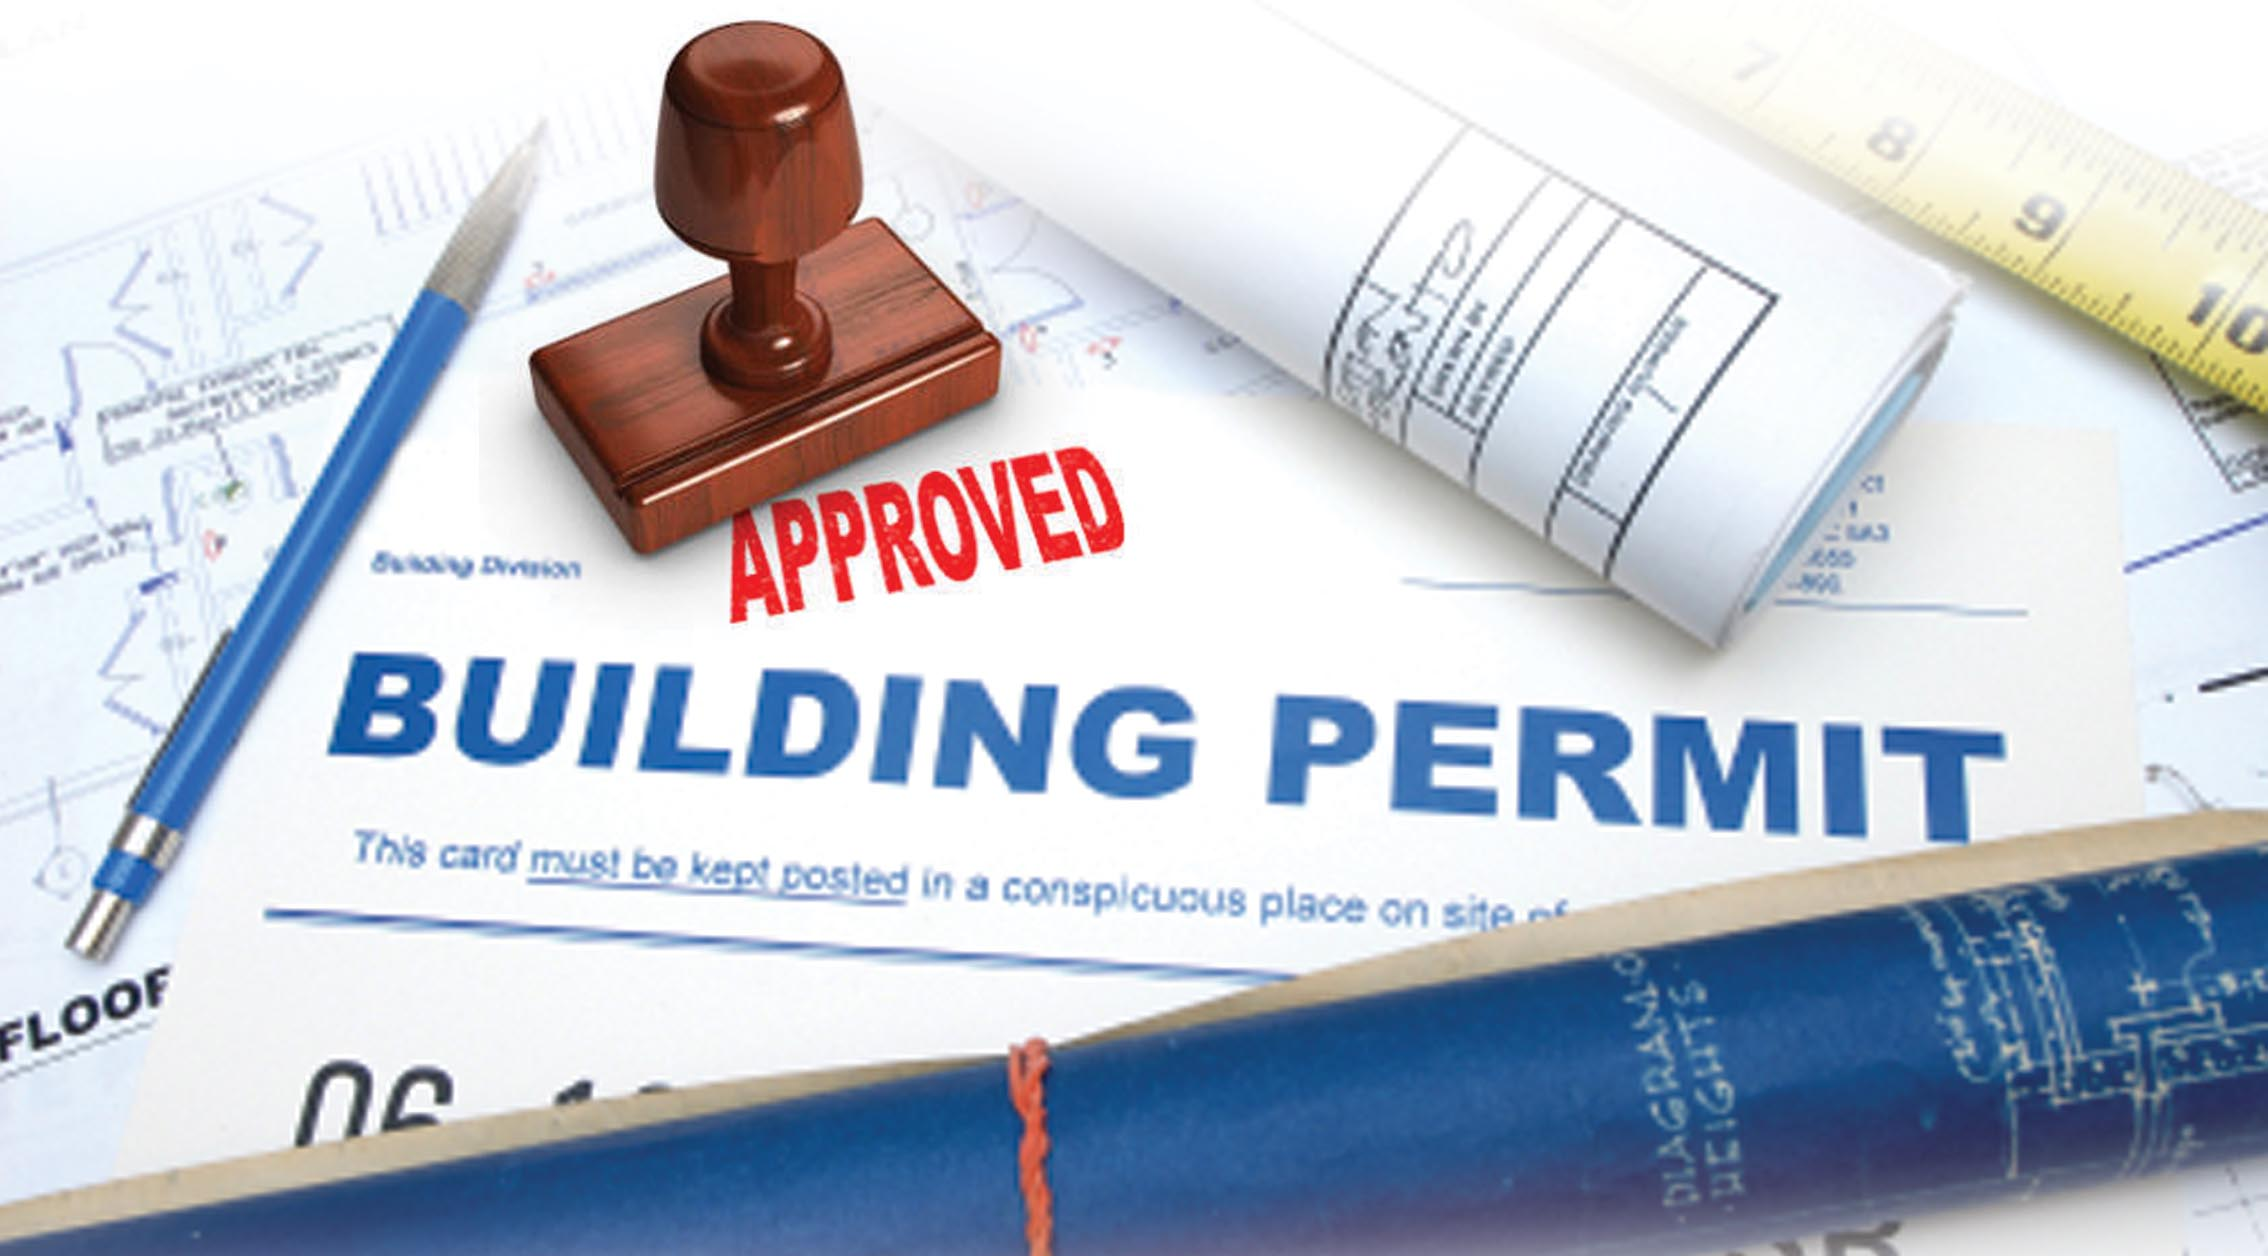 Get a building permit - how to do it quickly 73